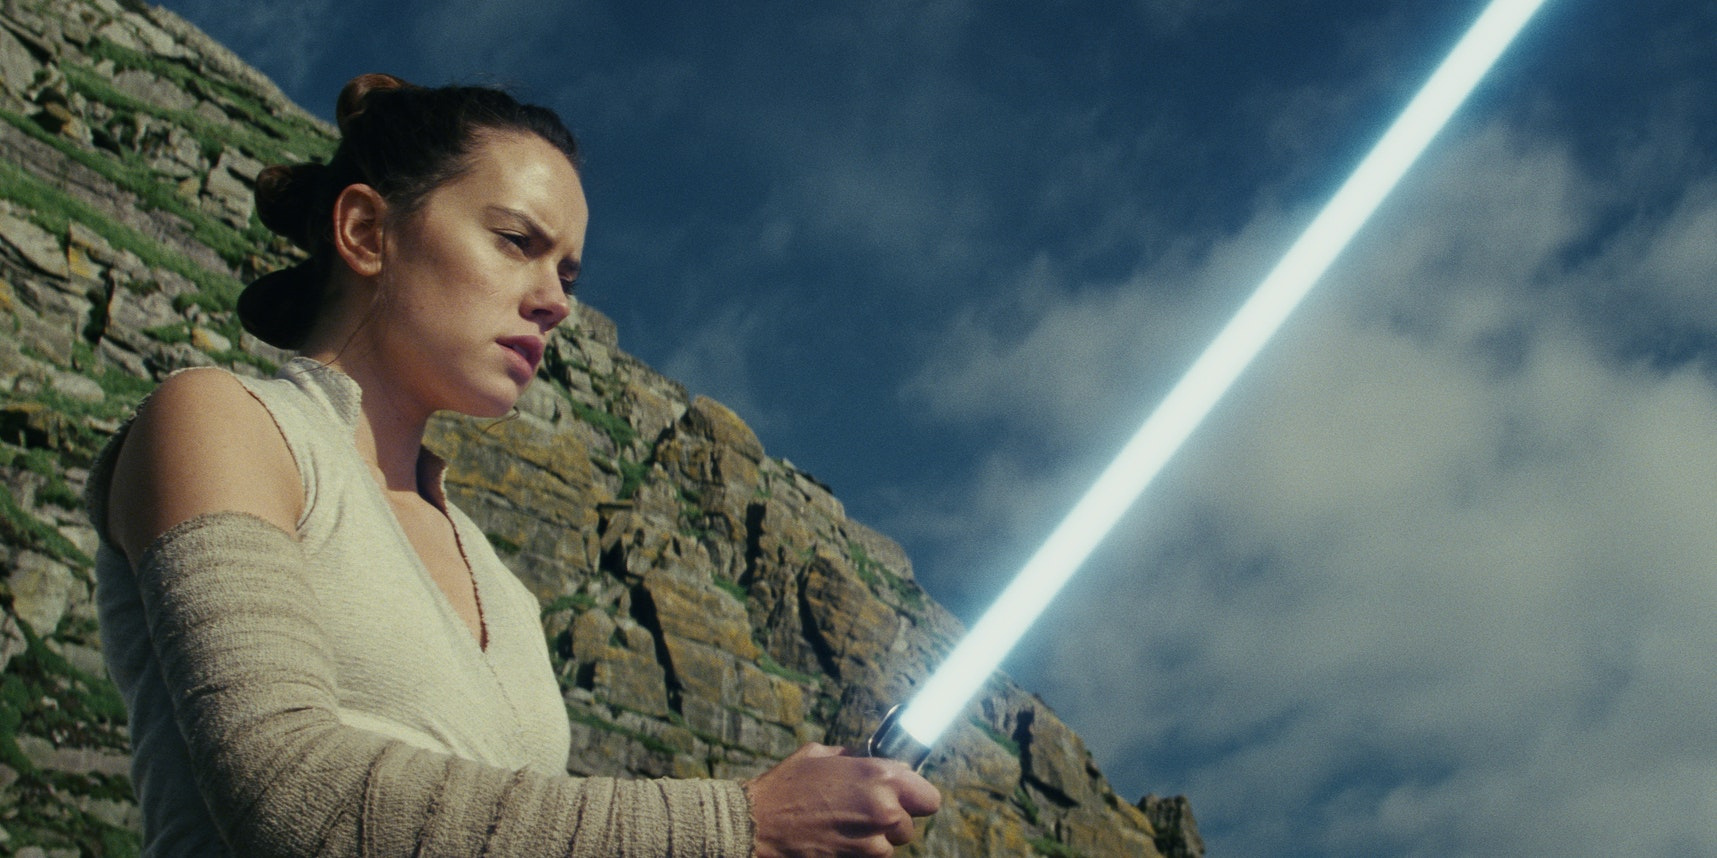 Reddit Just Discovered a Stunning 'Last Jedi' Lightsaber Easter Egg